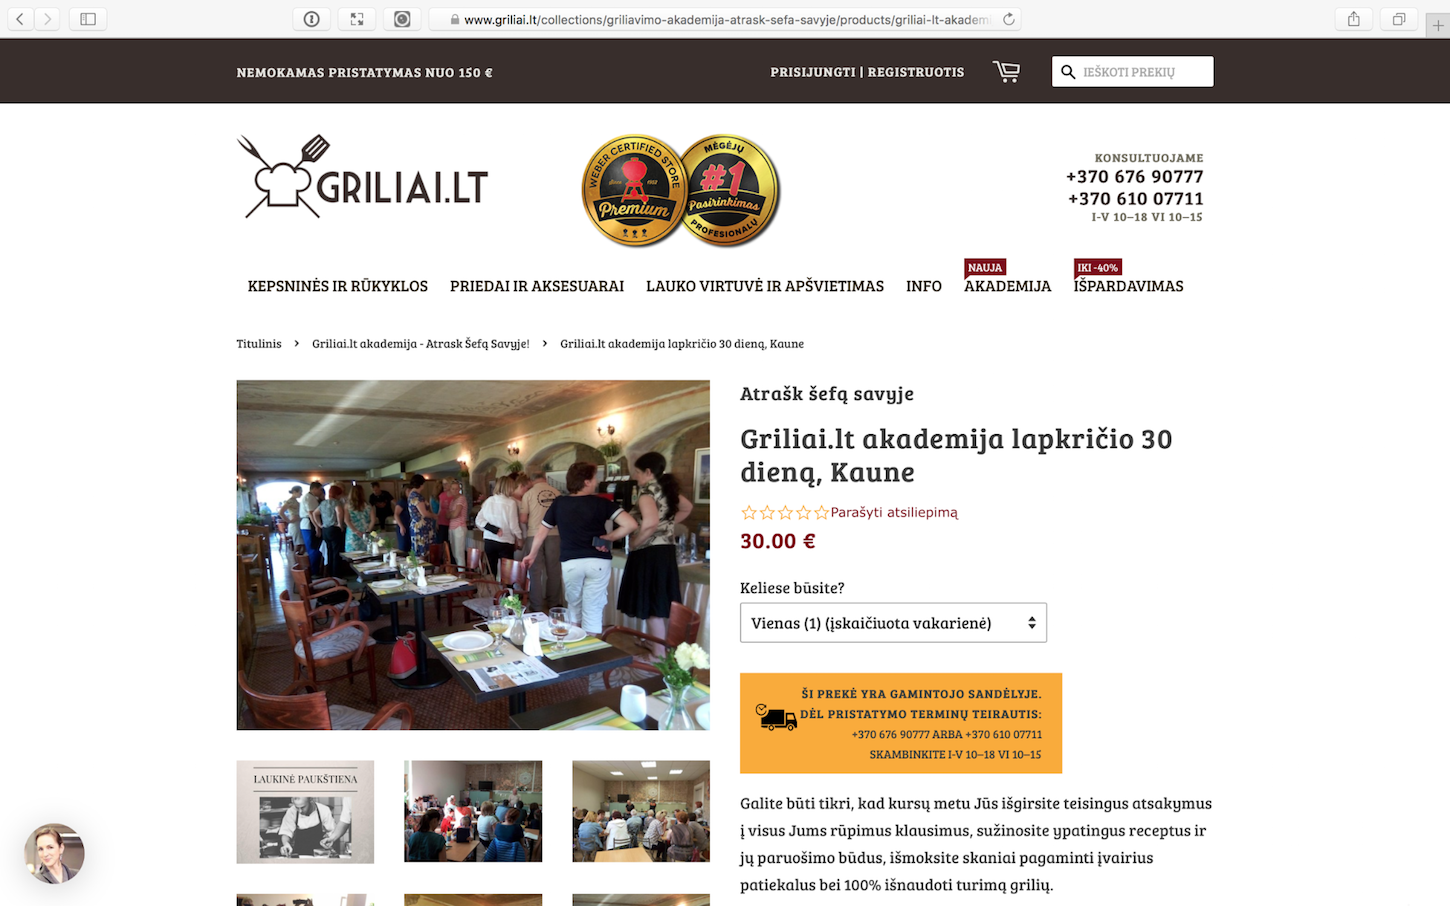 Successful Marketing Campaigns: Griliailt live event